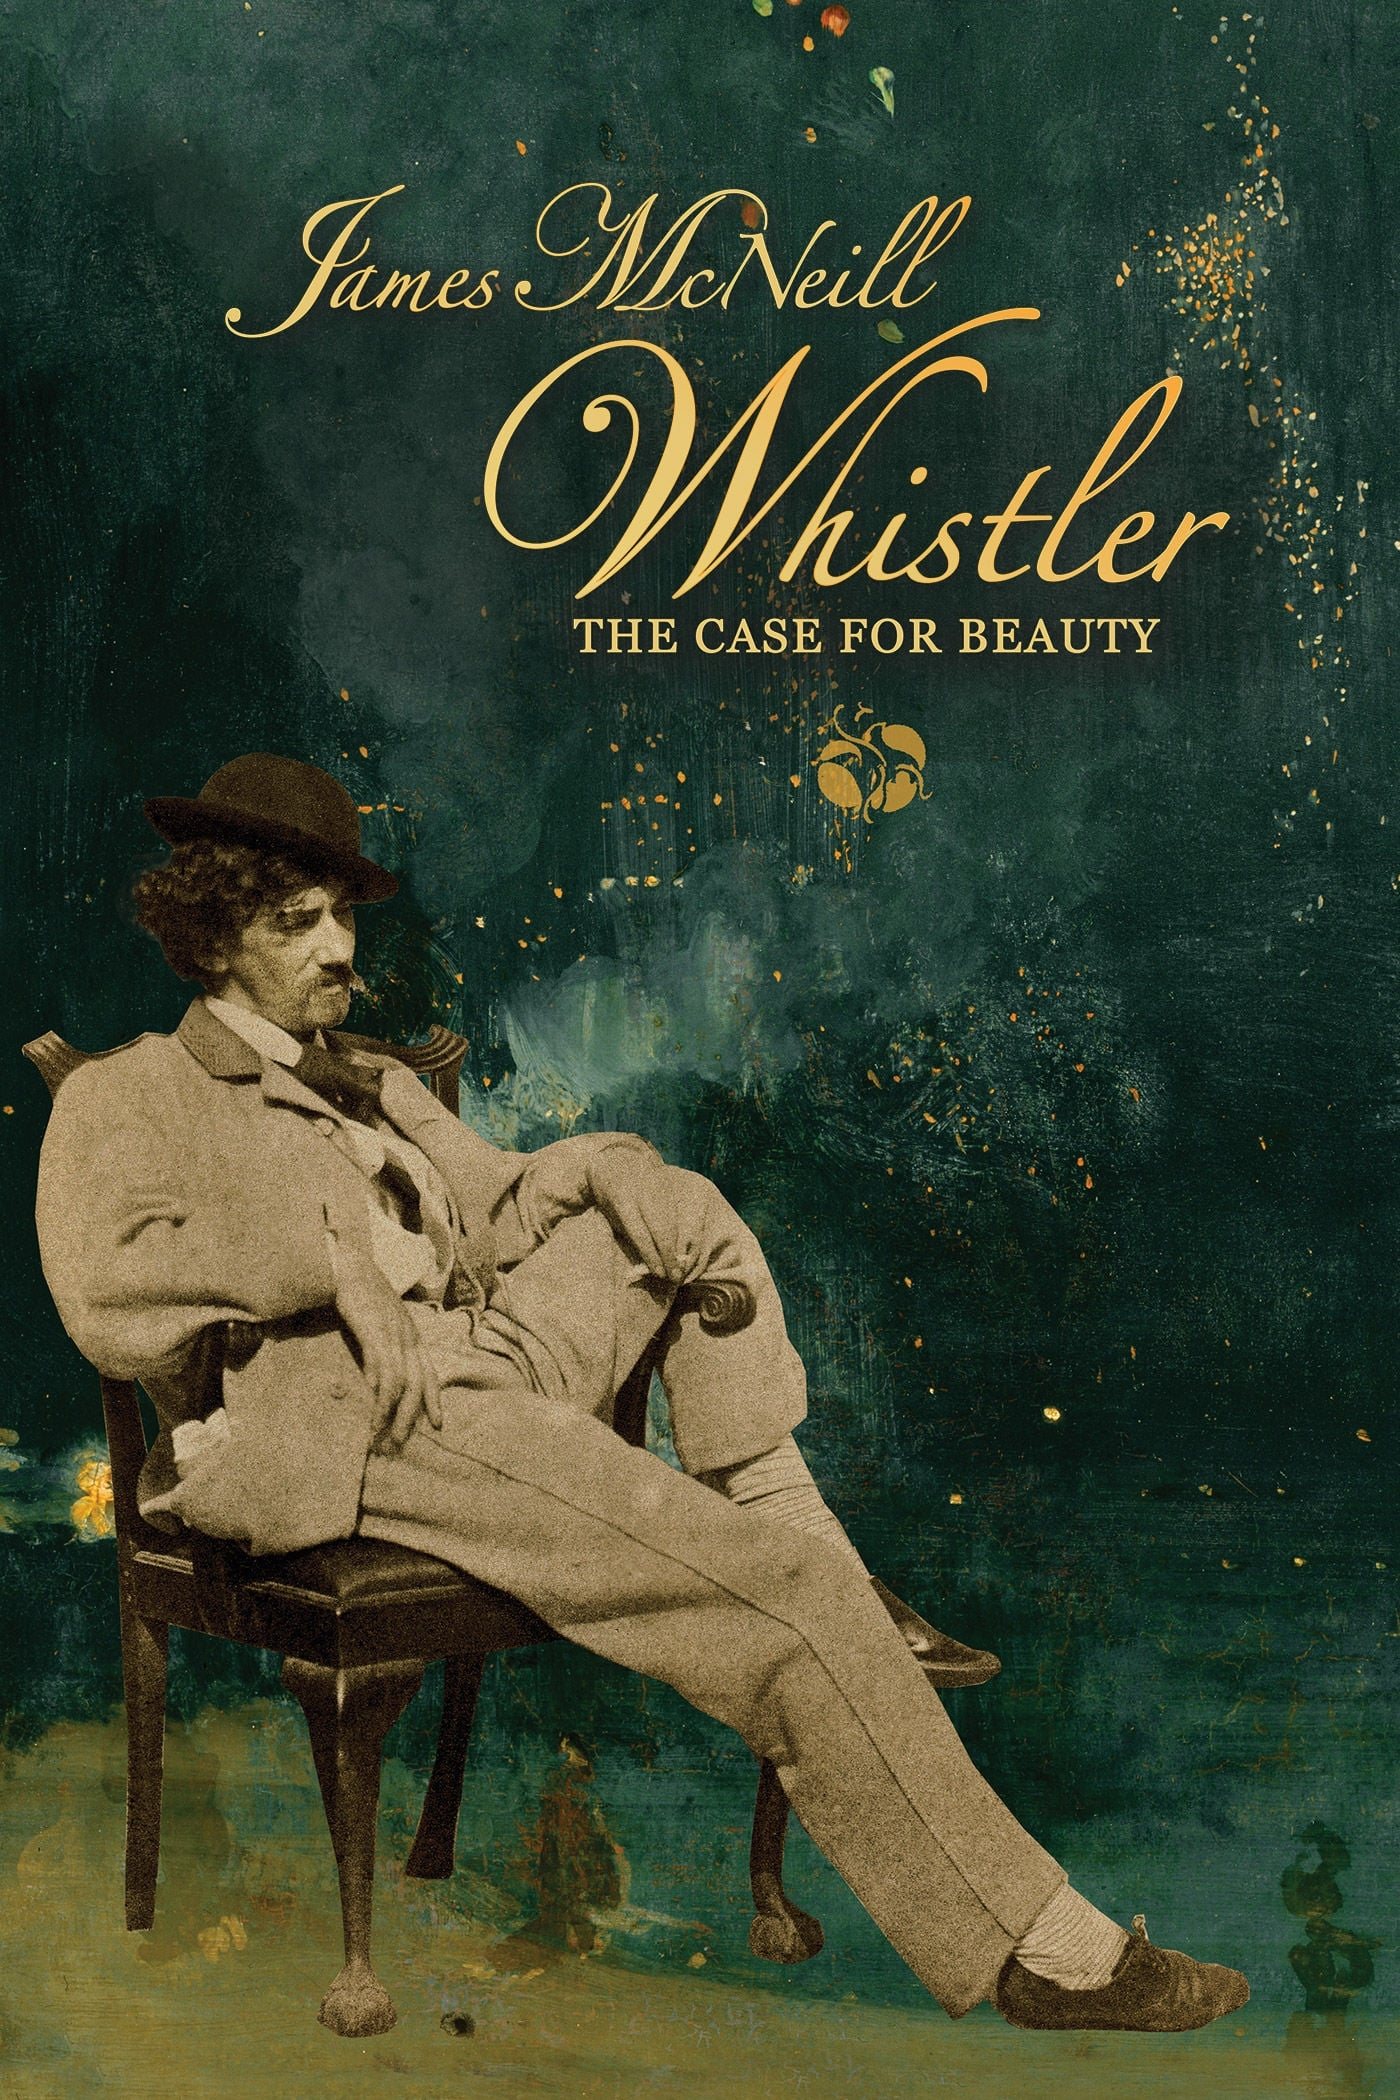 James McNeill Whistler and the Case for Beauty (2014)